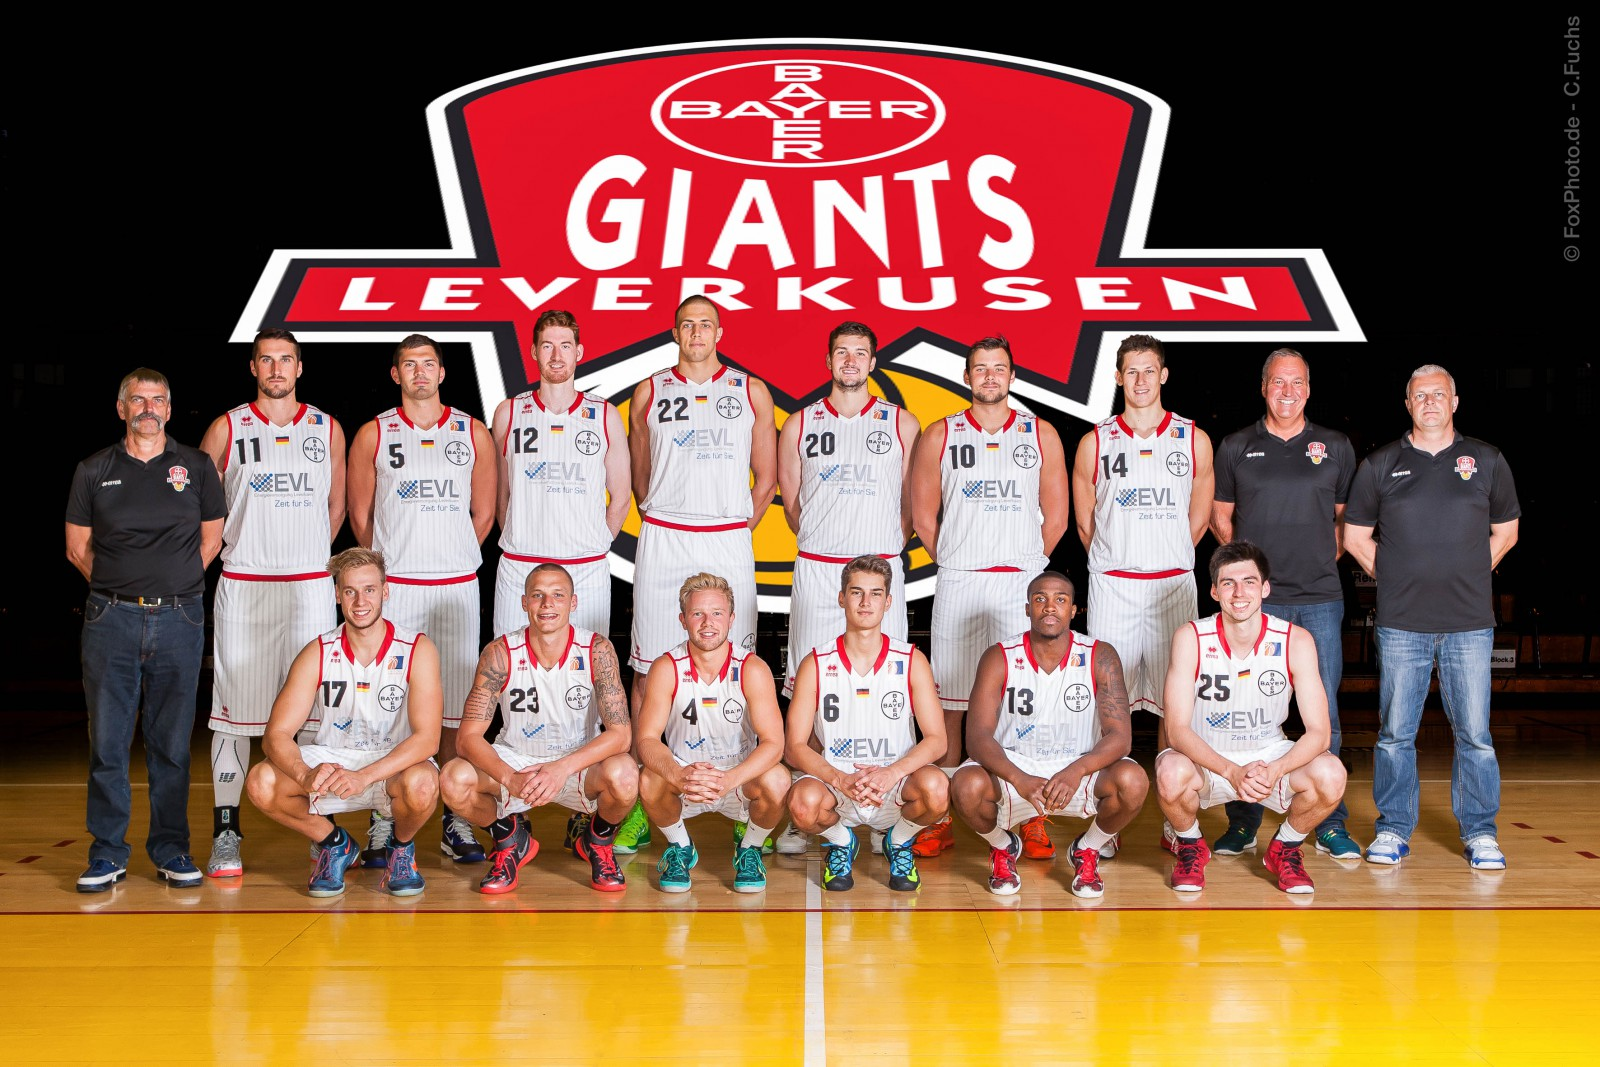 Bayer Giants ProA 2014-2015©Foxphoto